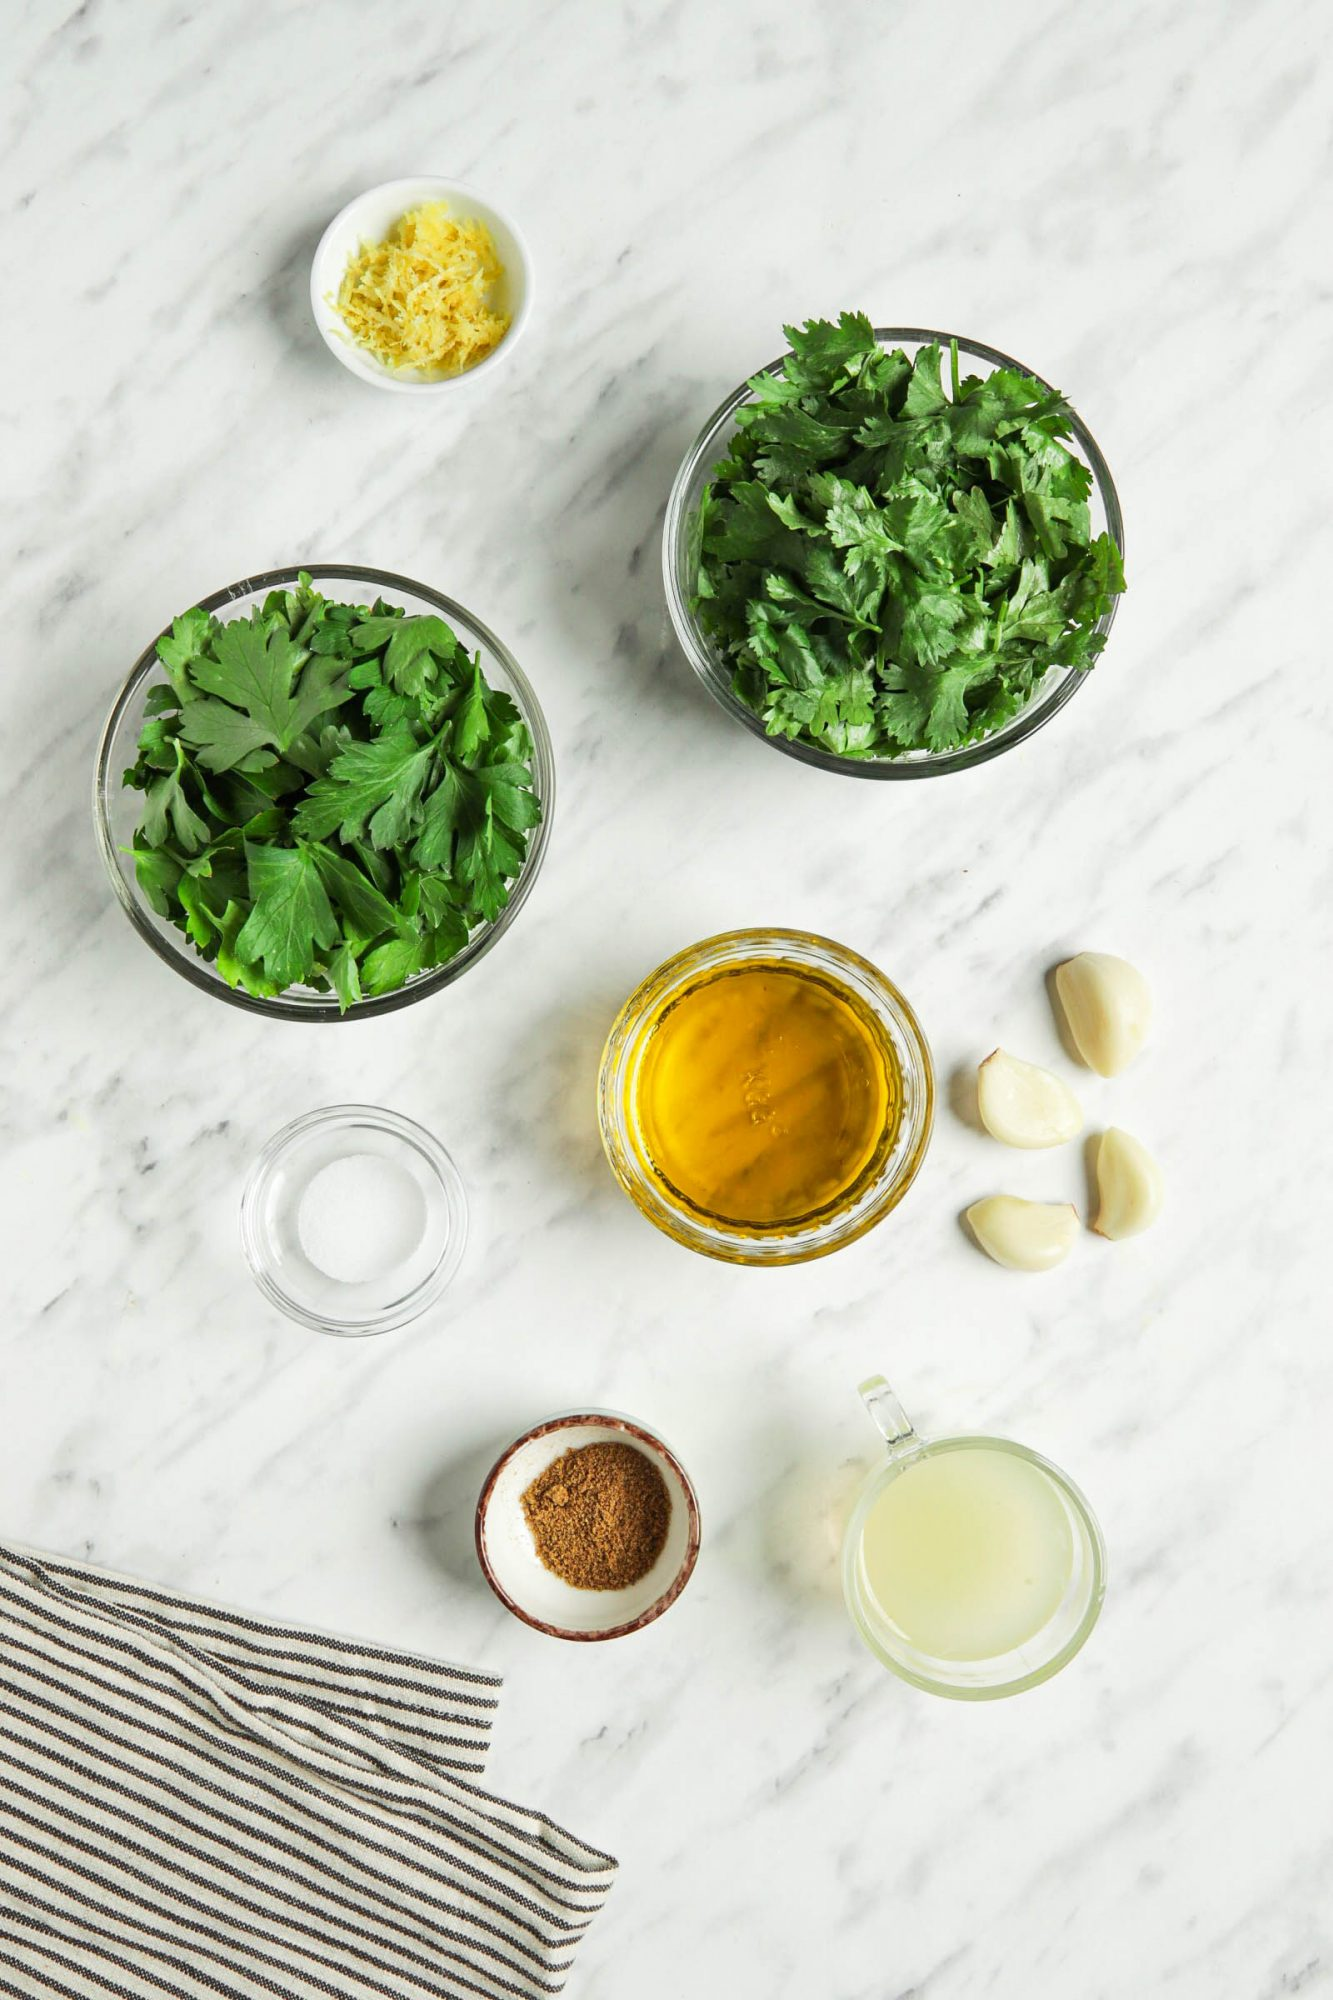 Ingredients in Chermoula Sauce